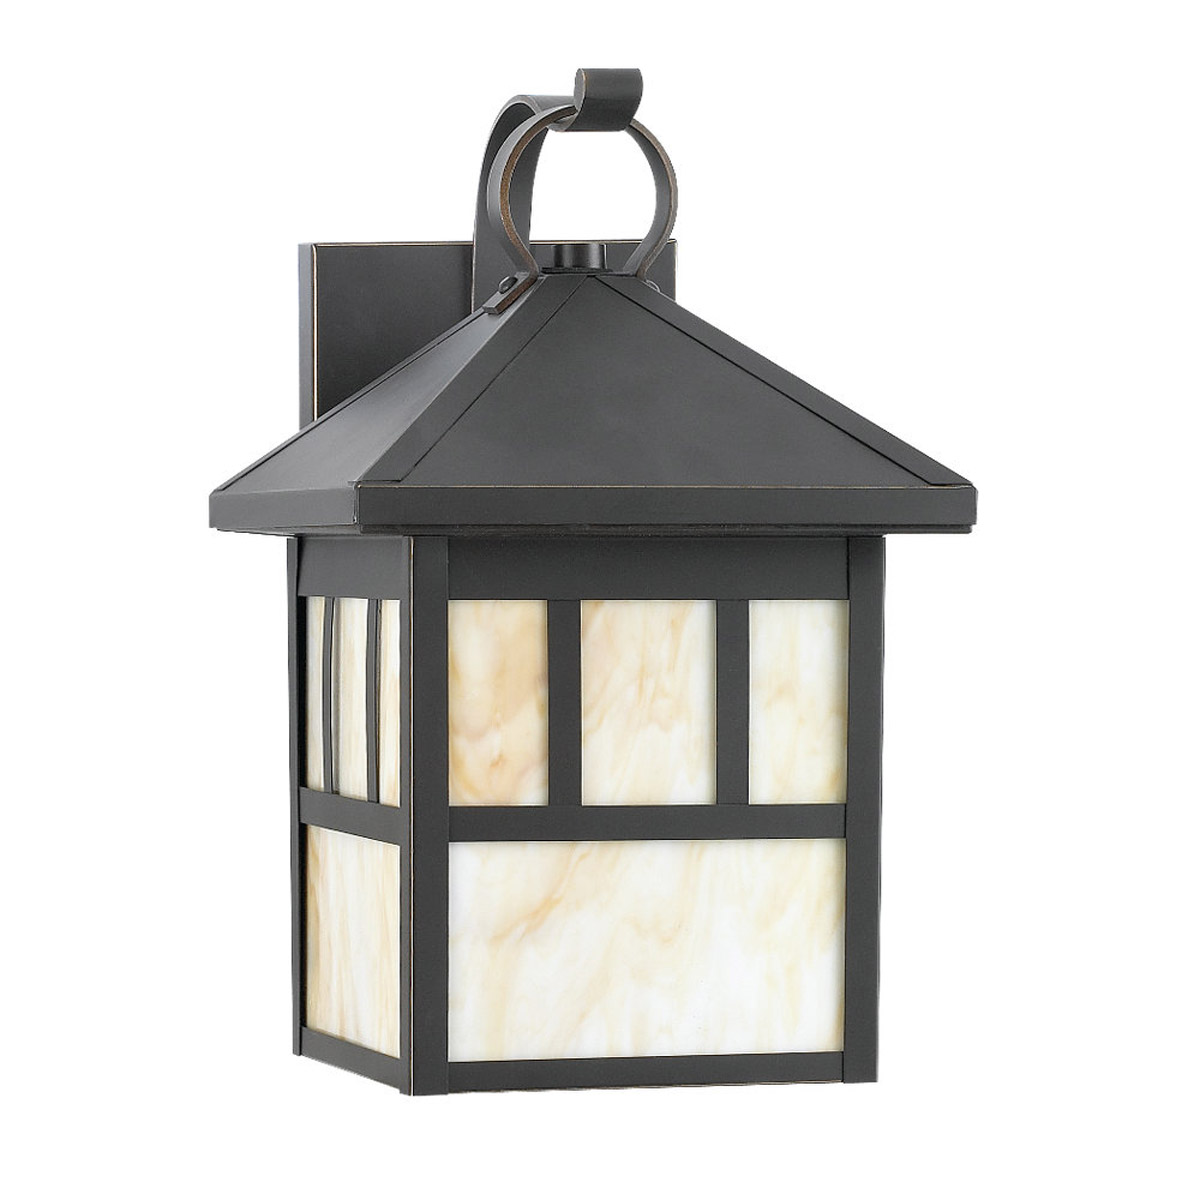 Sea Gull Lighting Prairie Statement 1 Light Outdoor Wall Lantern in Antique Bronze 8508D-71 photo